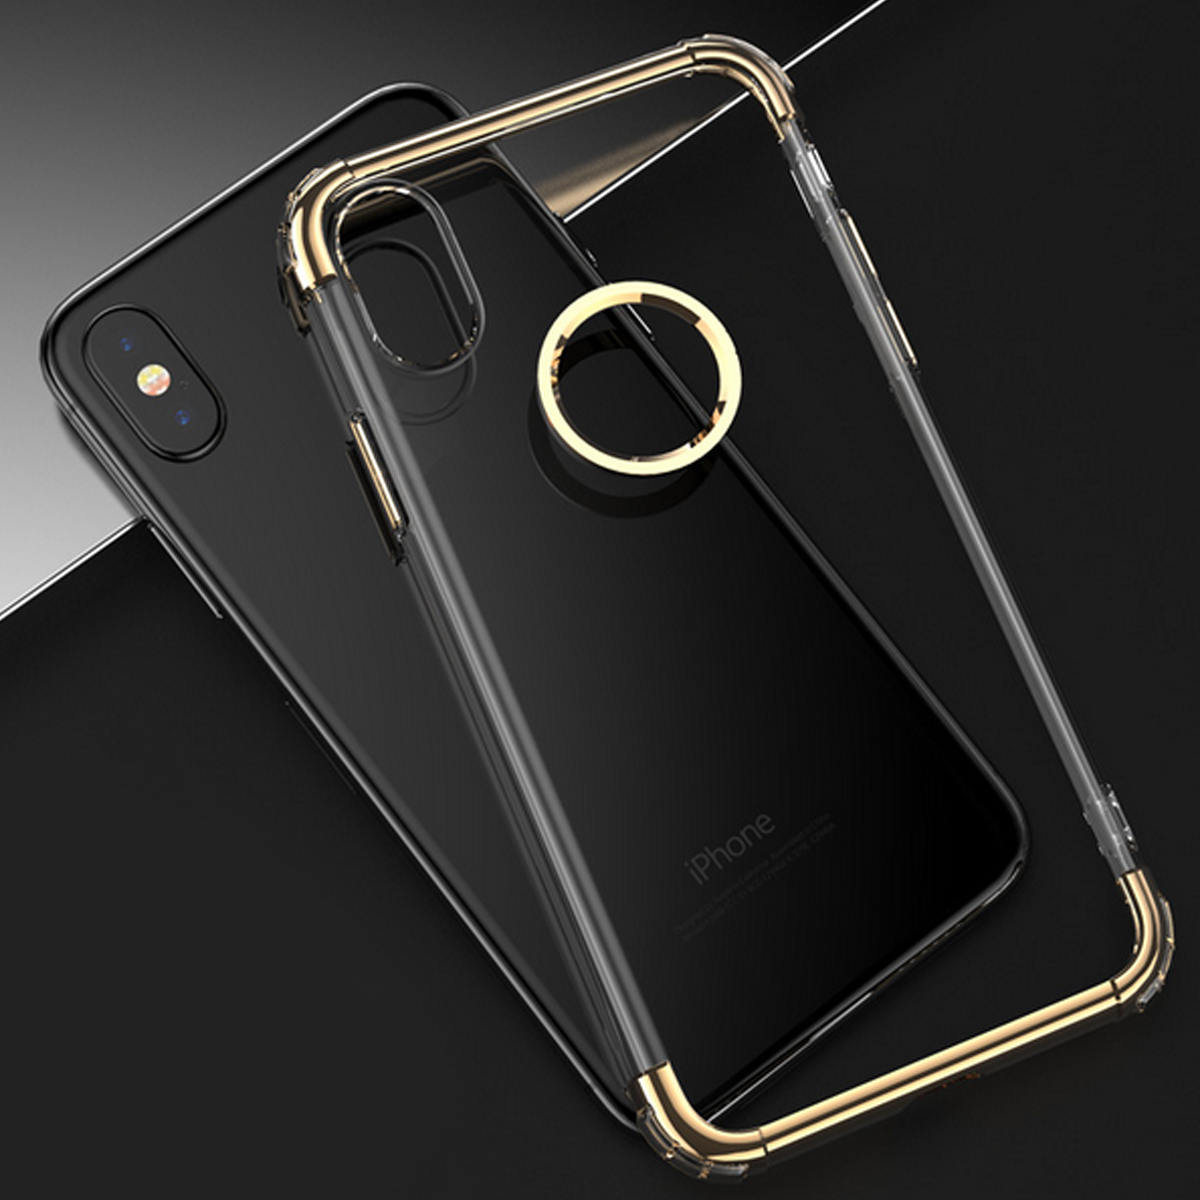 Smartfren Andromax Q Black Clear Free iRing. Softcase Silicon Ultrathin For Xiaomi . Source · 141d4a5a-7b68-4b69-ac55-717826f25b8e.jpg .